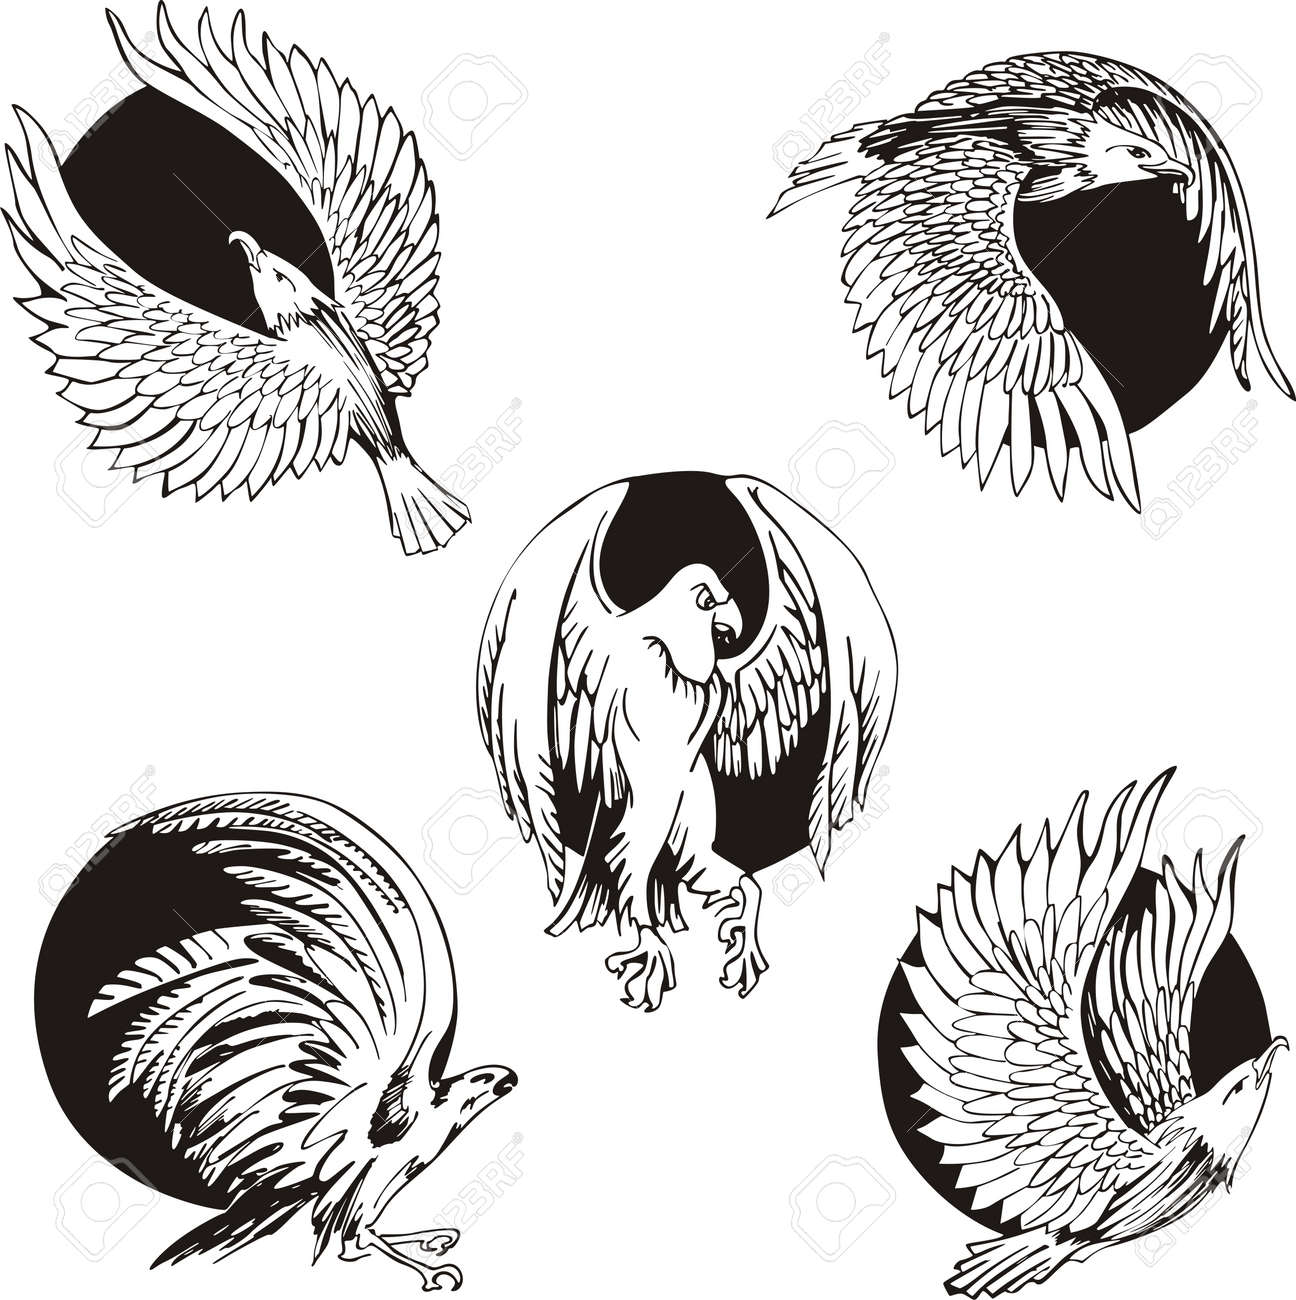 Round Designs With Eagles And Falcons. Set Of Black And White ...